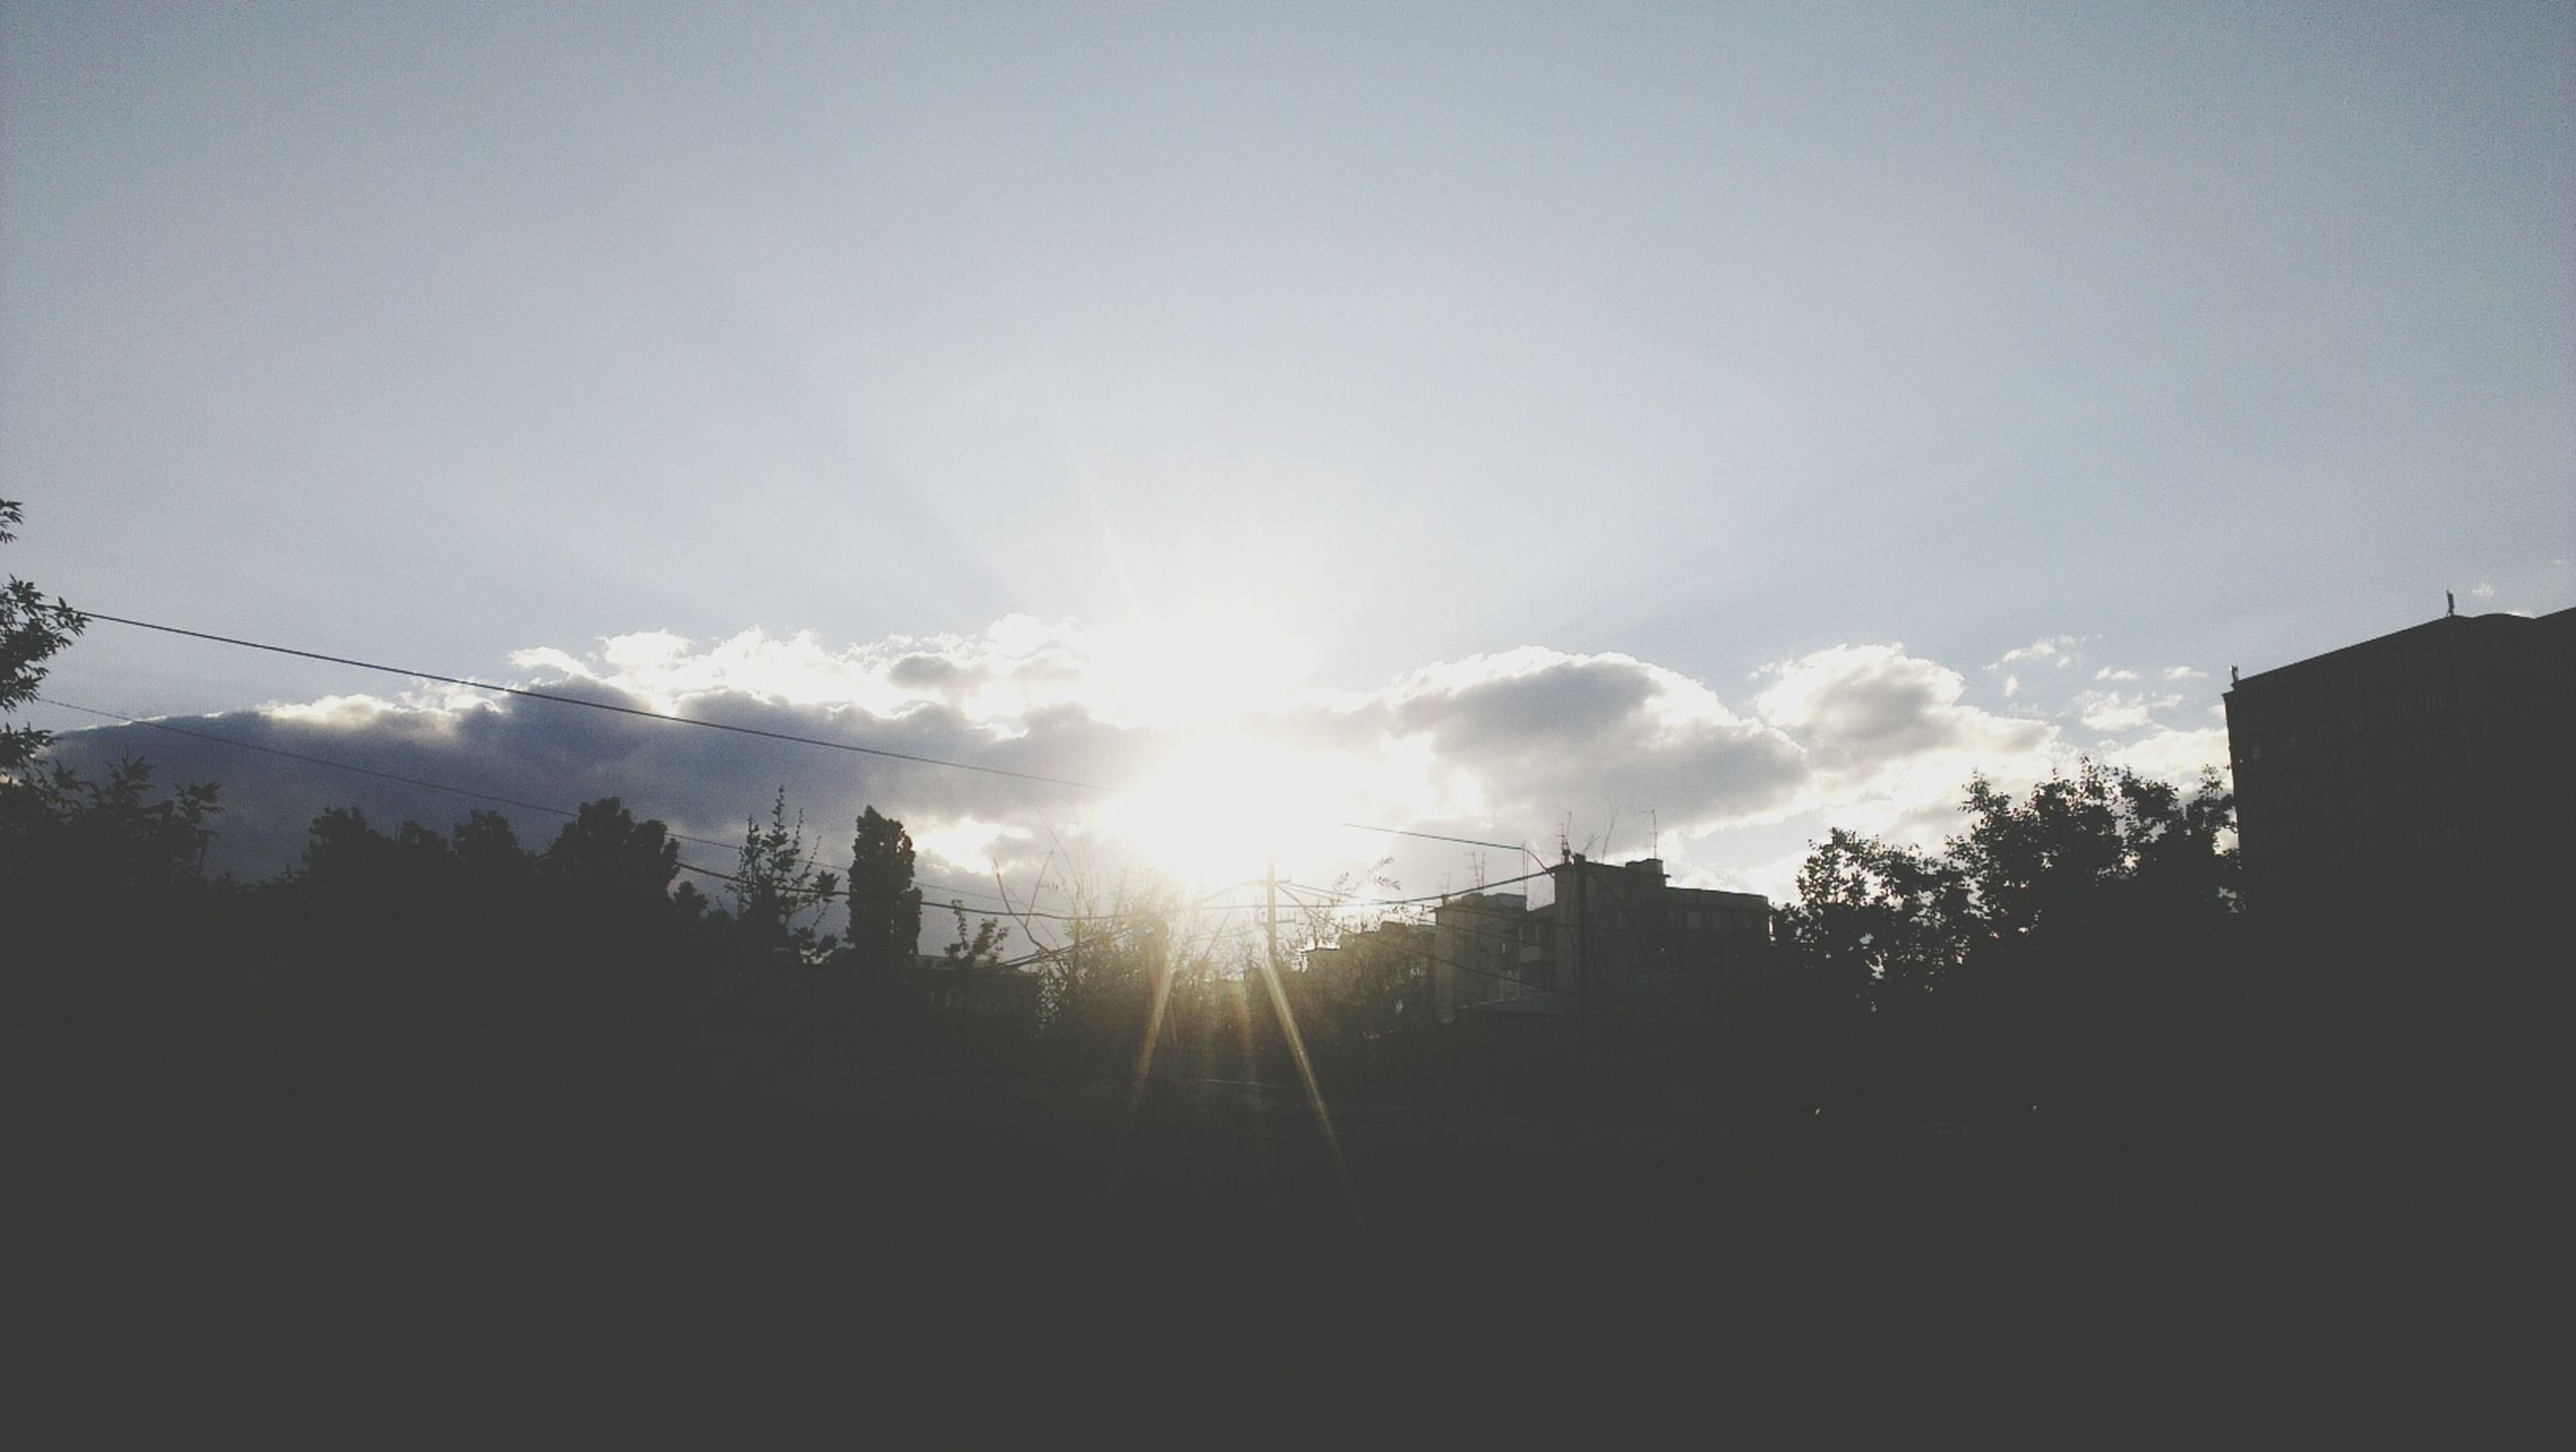 sun, silhouette, sunbeam, sunlight, tree, sky, lens flare, tranquility, sunset, nature, built structure, beauty in nature, low angle view, tranquil scene, building exterior, scenics, architecture, outdoors, no people, bright